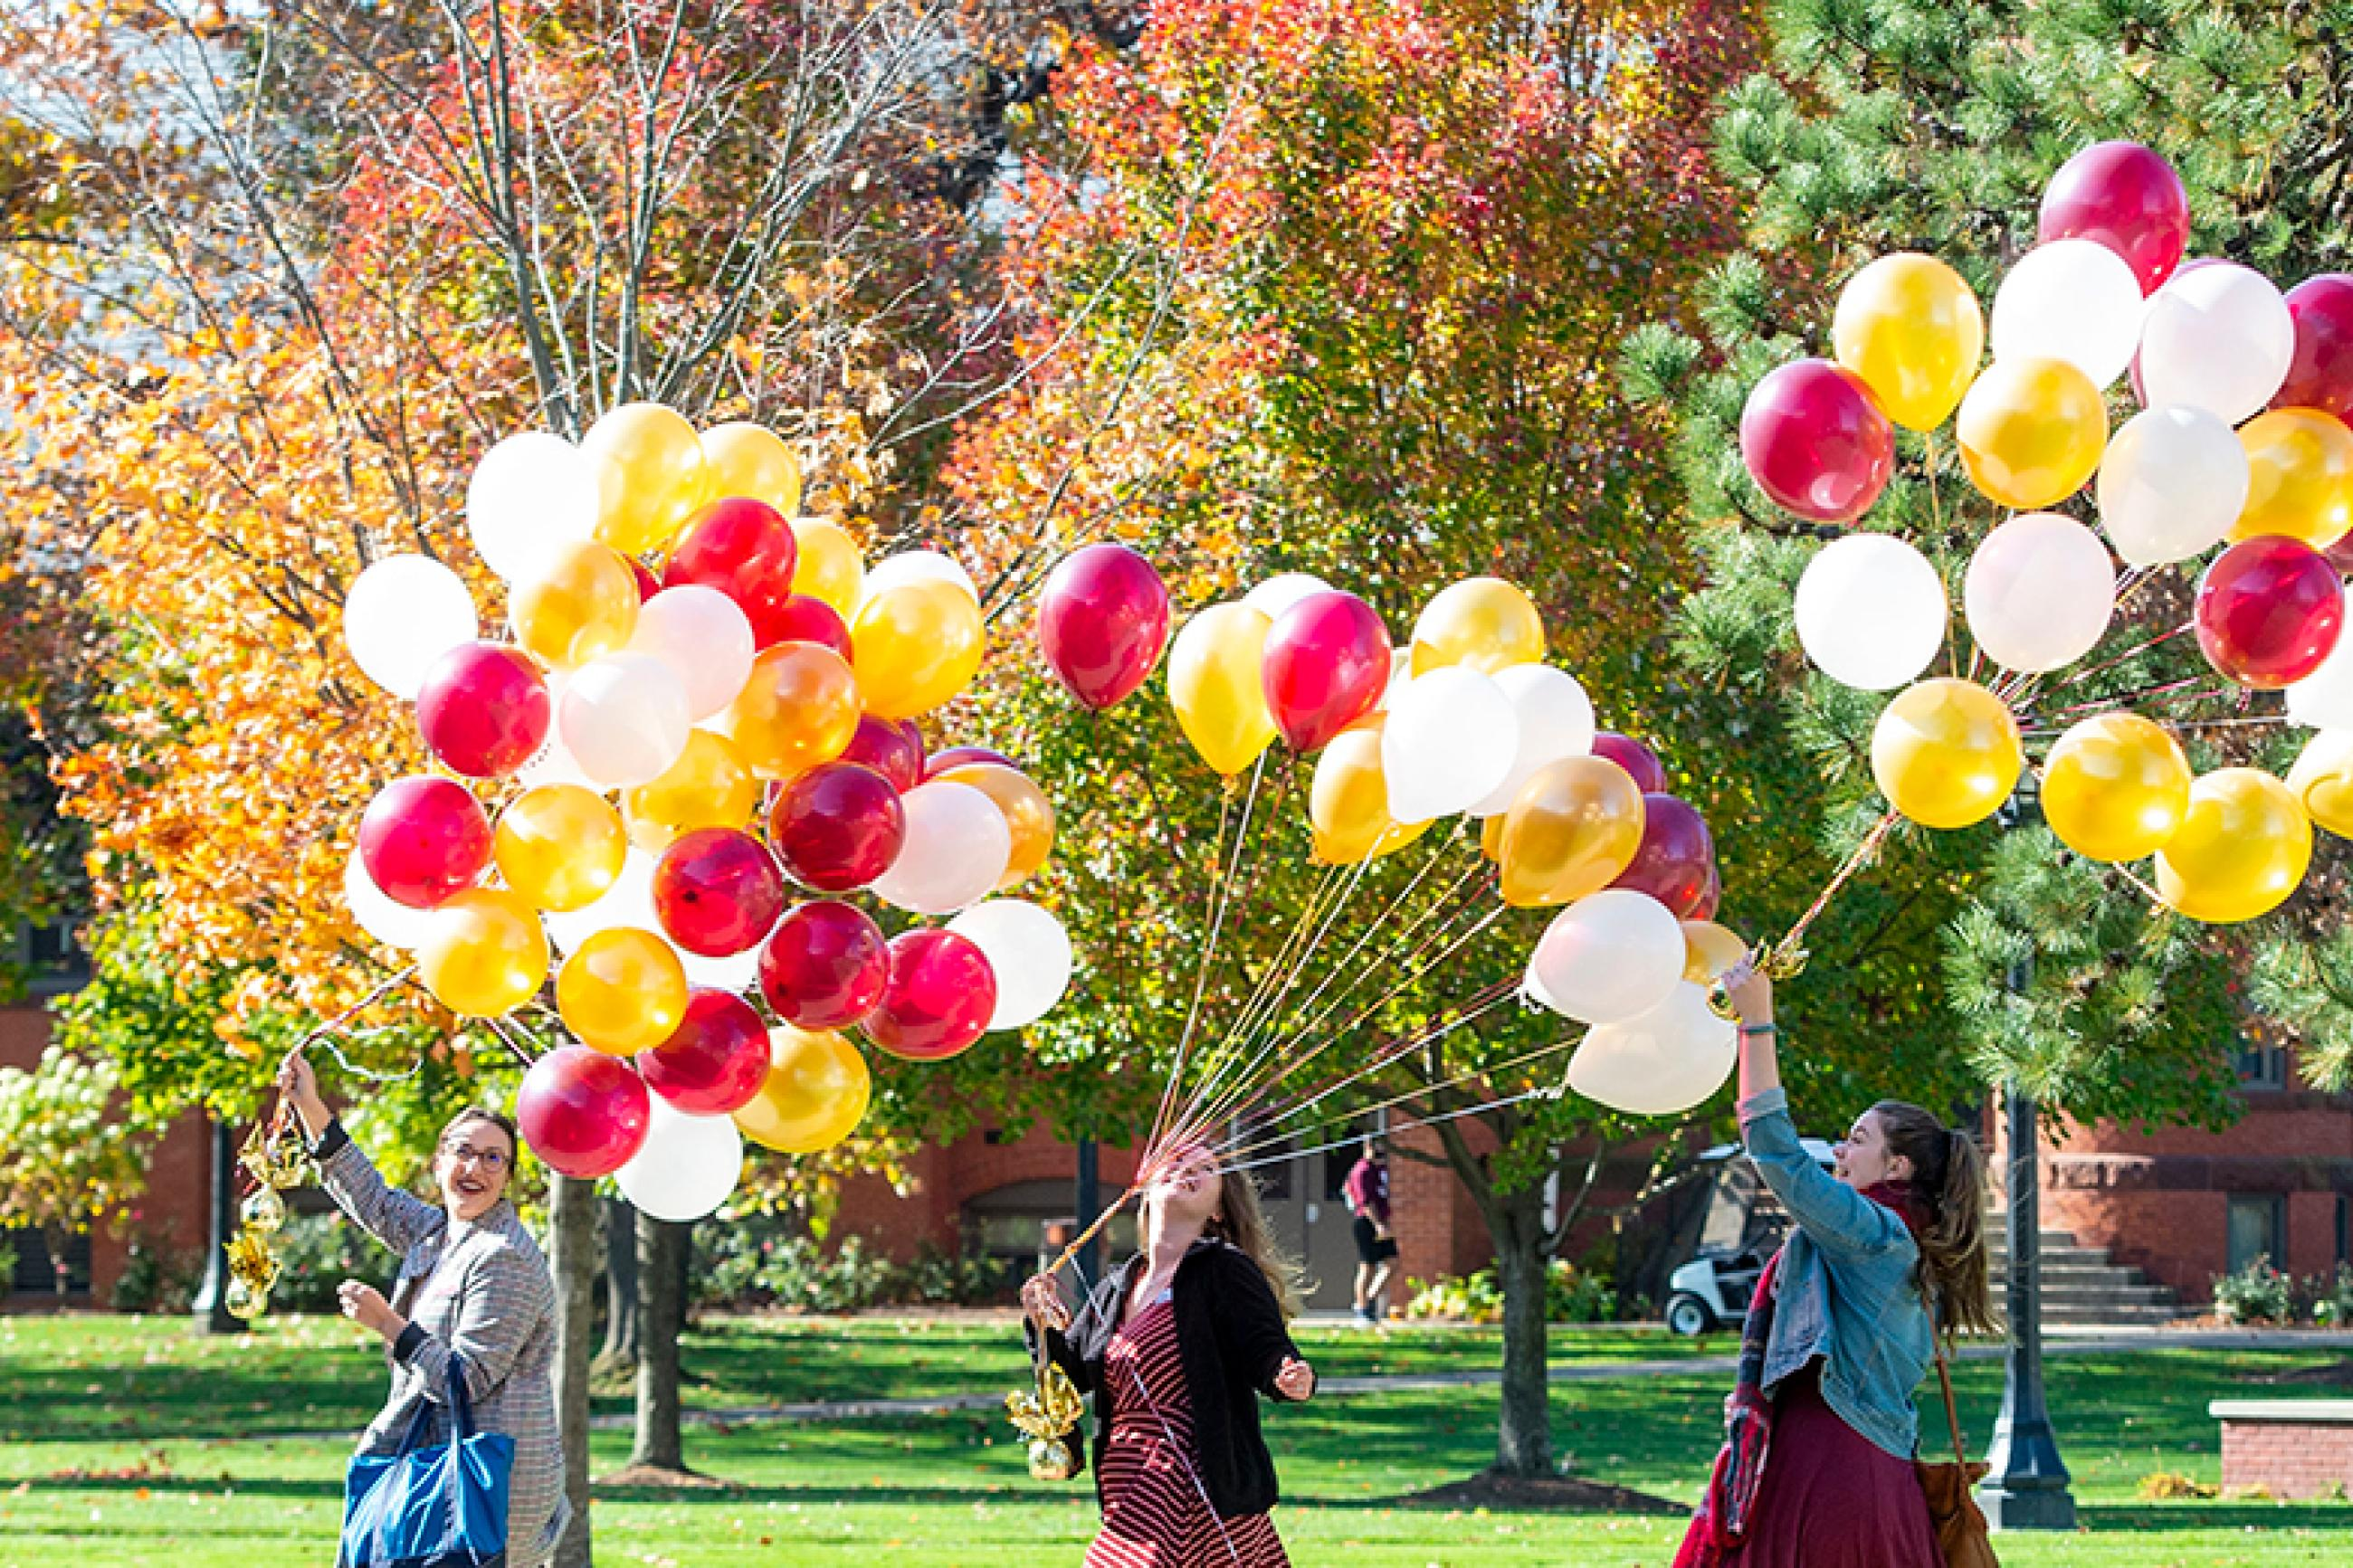 Balloons carried by admissions staff